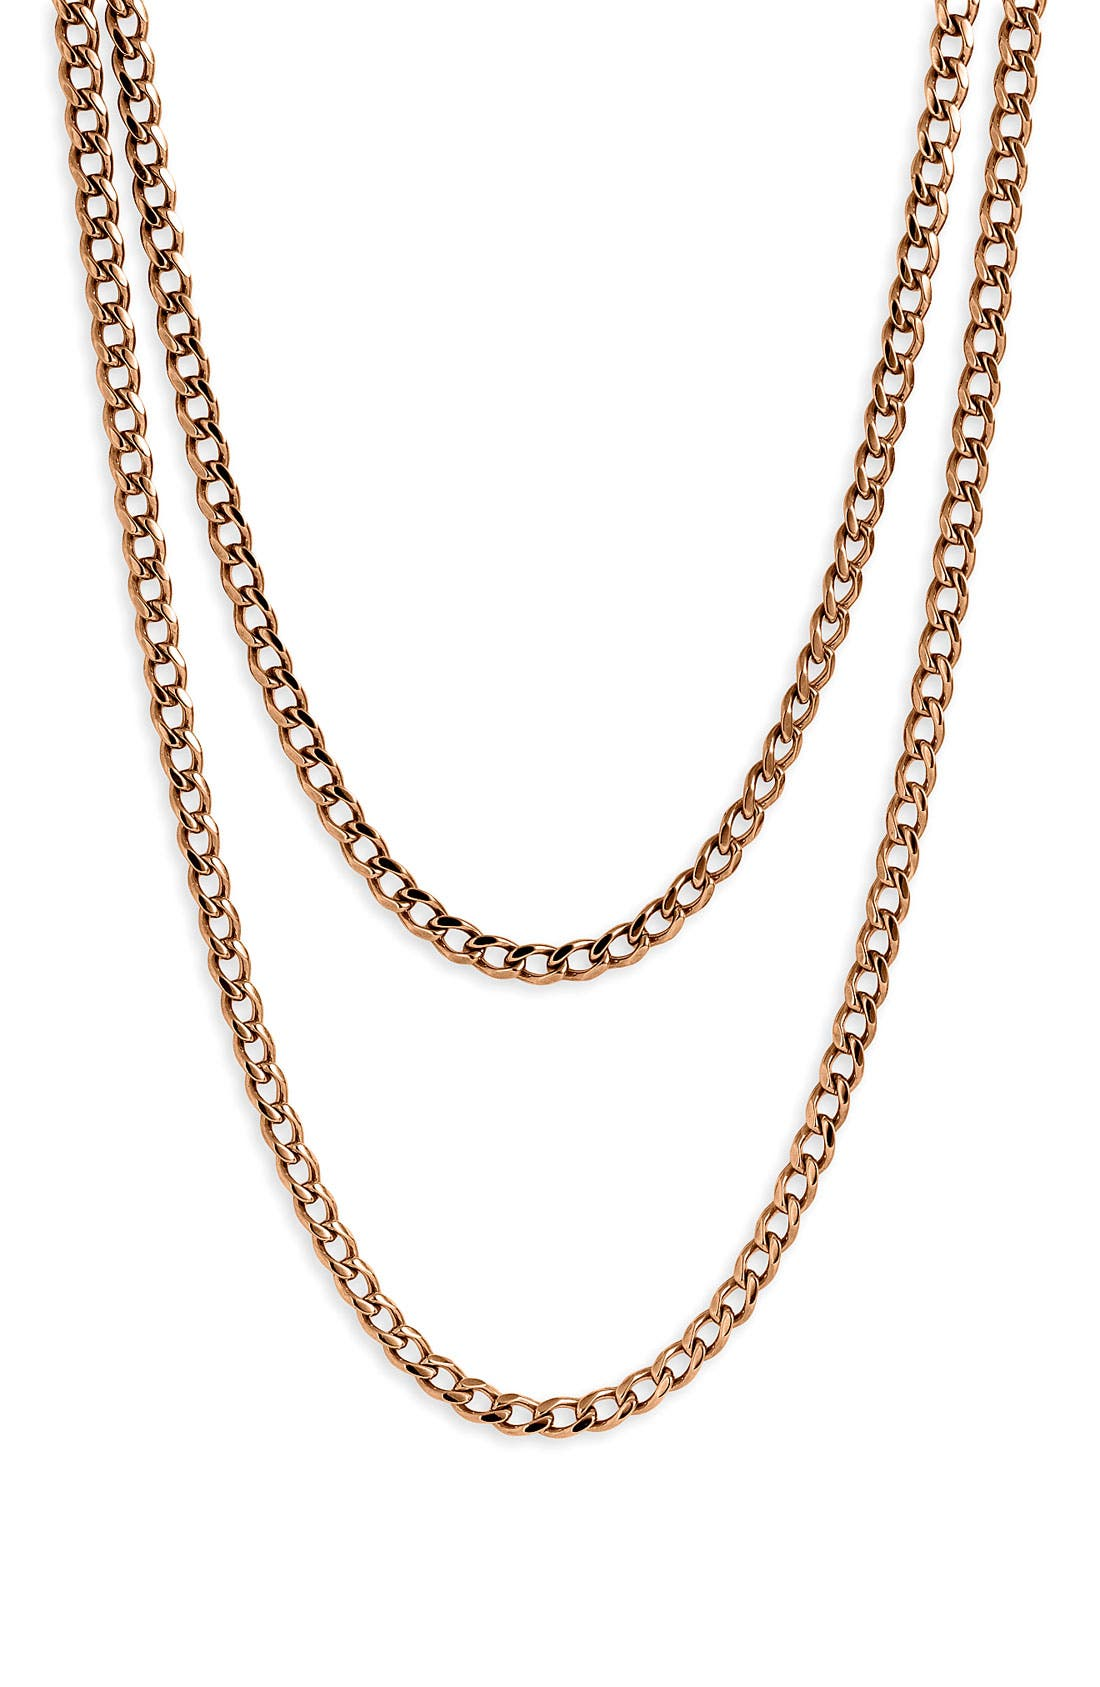 Main Image - Nordstrom Long Strand Chain Necklace